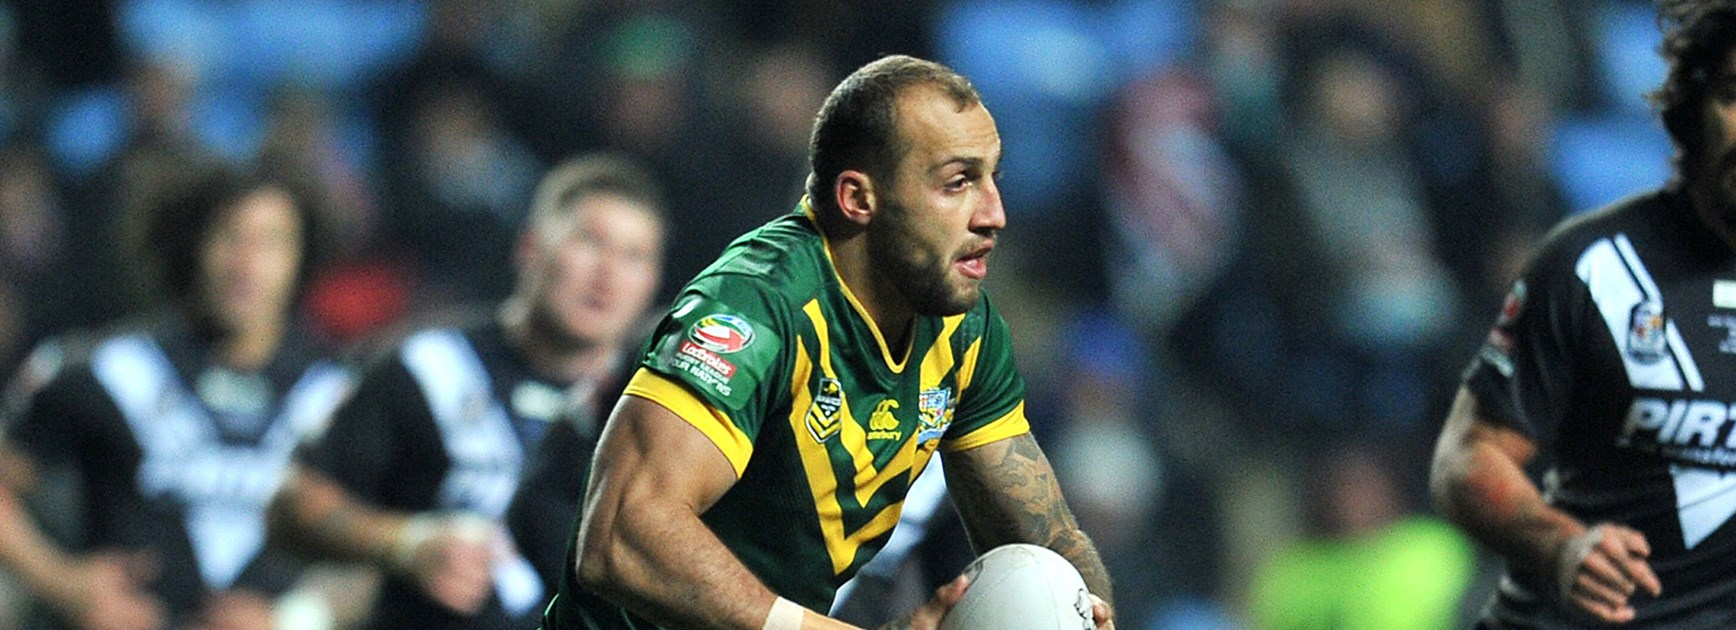 Kangaroos winger Blake Ferguson was named Man of the Match against the Kiwis in Coventry.